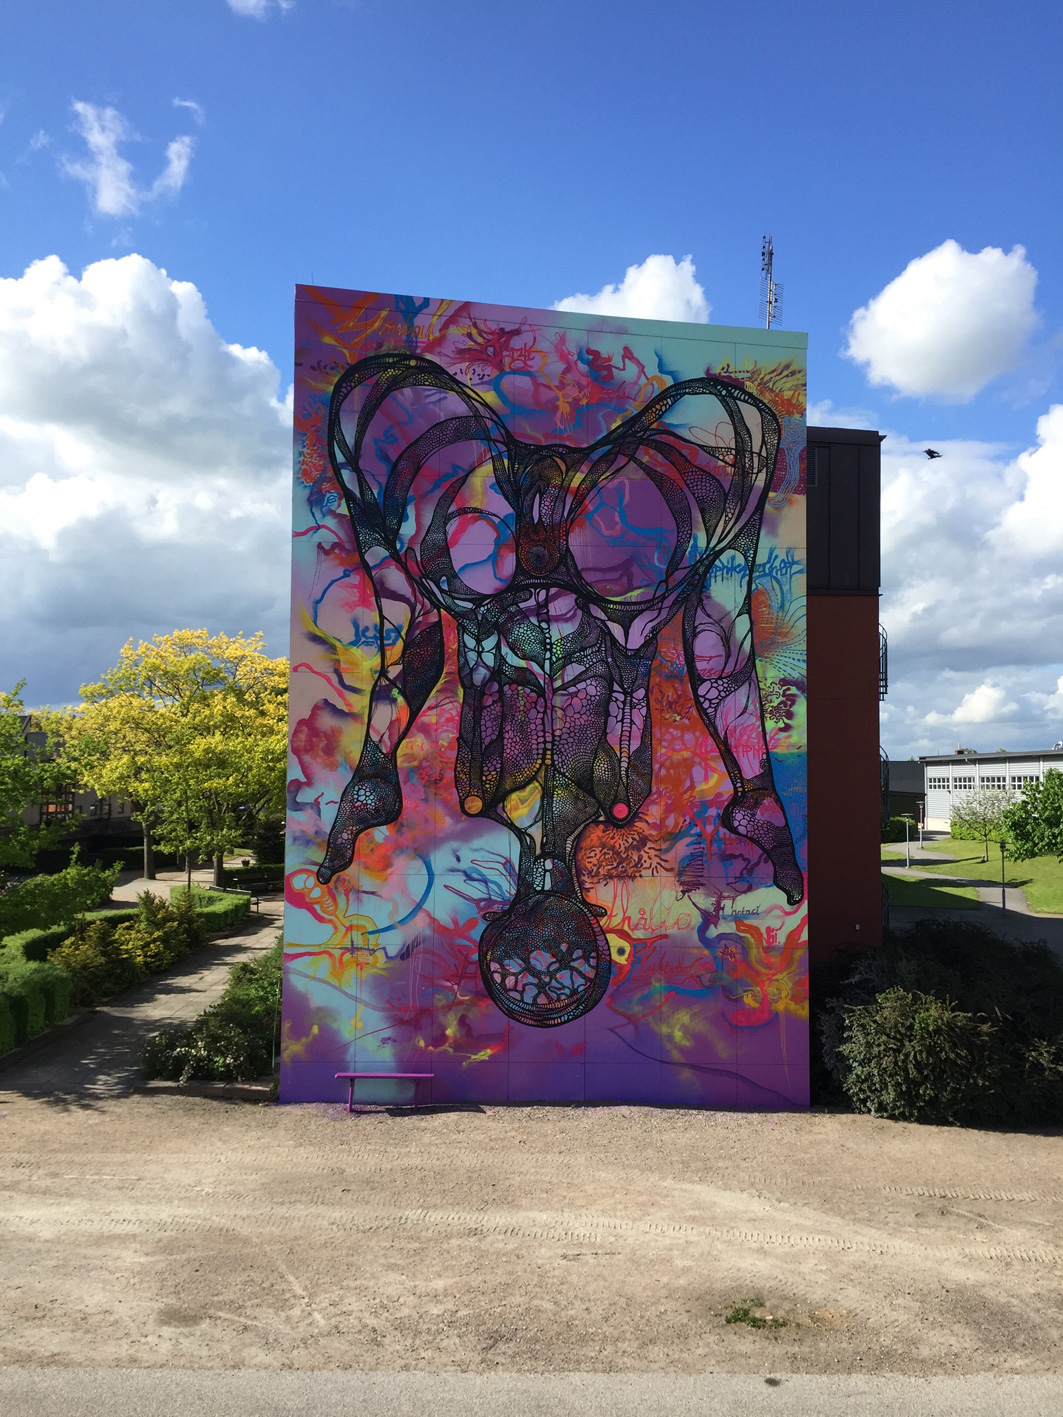 Carolina Falkholt, Untitled wall painting, 2015, public commission for the city of Ystad, Sweden.